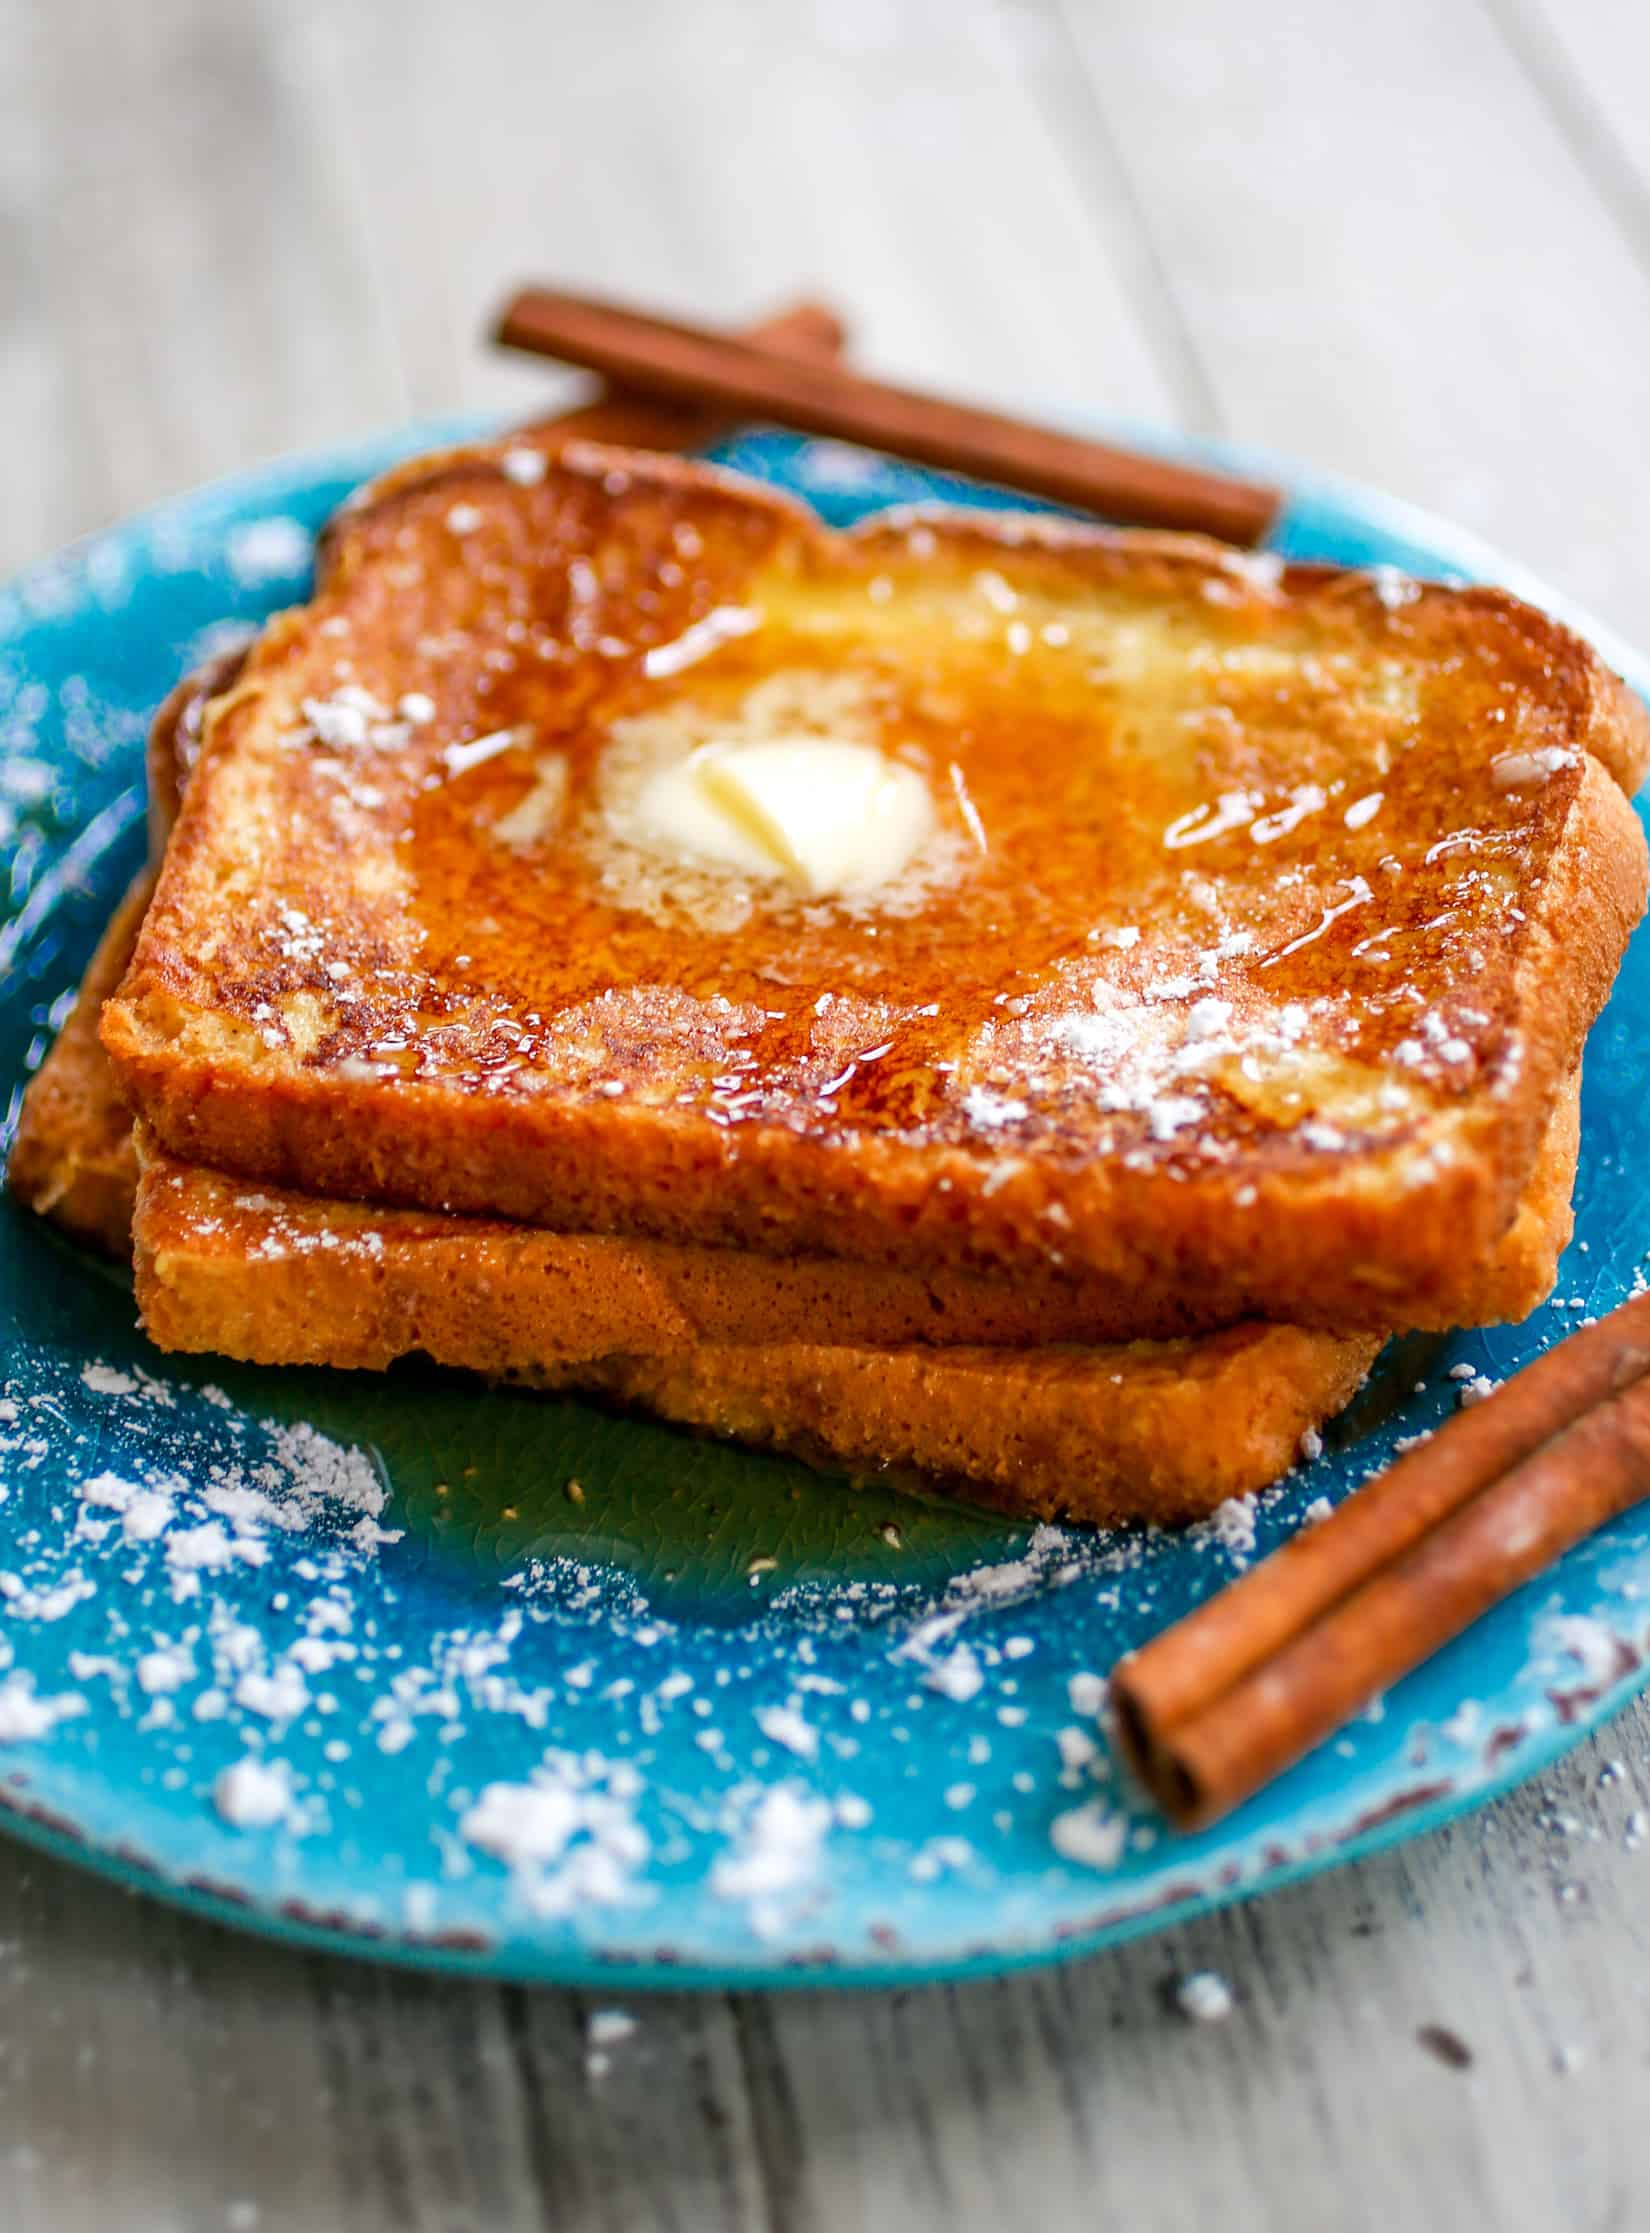 Eggnog French Toast - Sweet, lightly spiced breakfast perfection is what I like to call this eggnog french toast! The perfect holiday season breakfast!